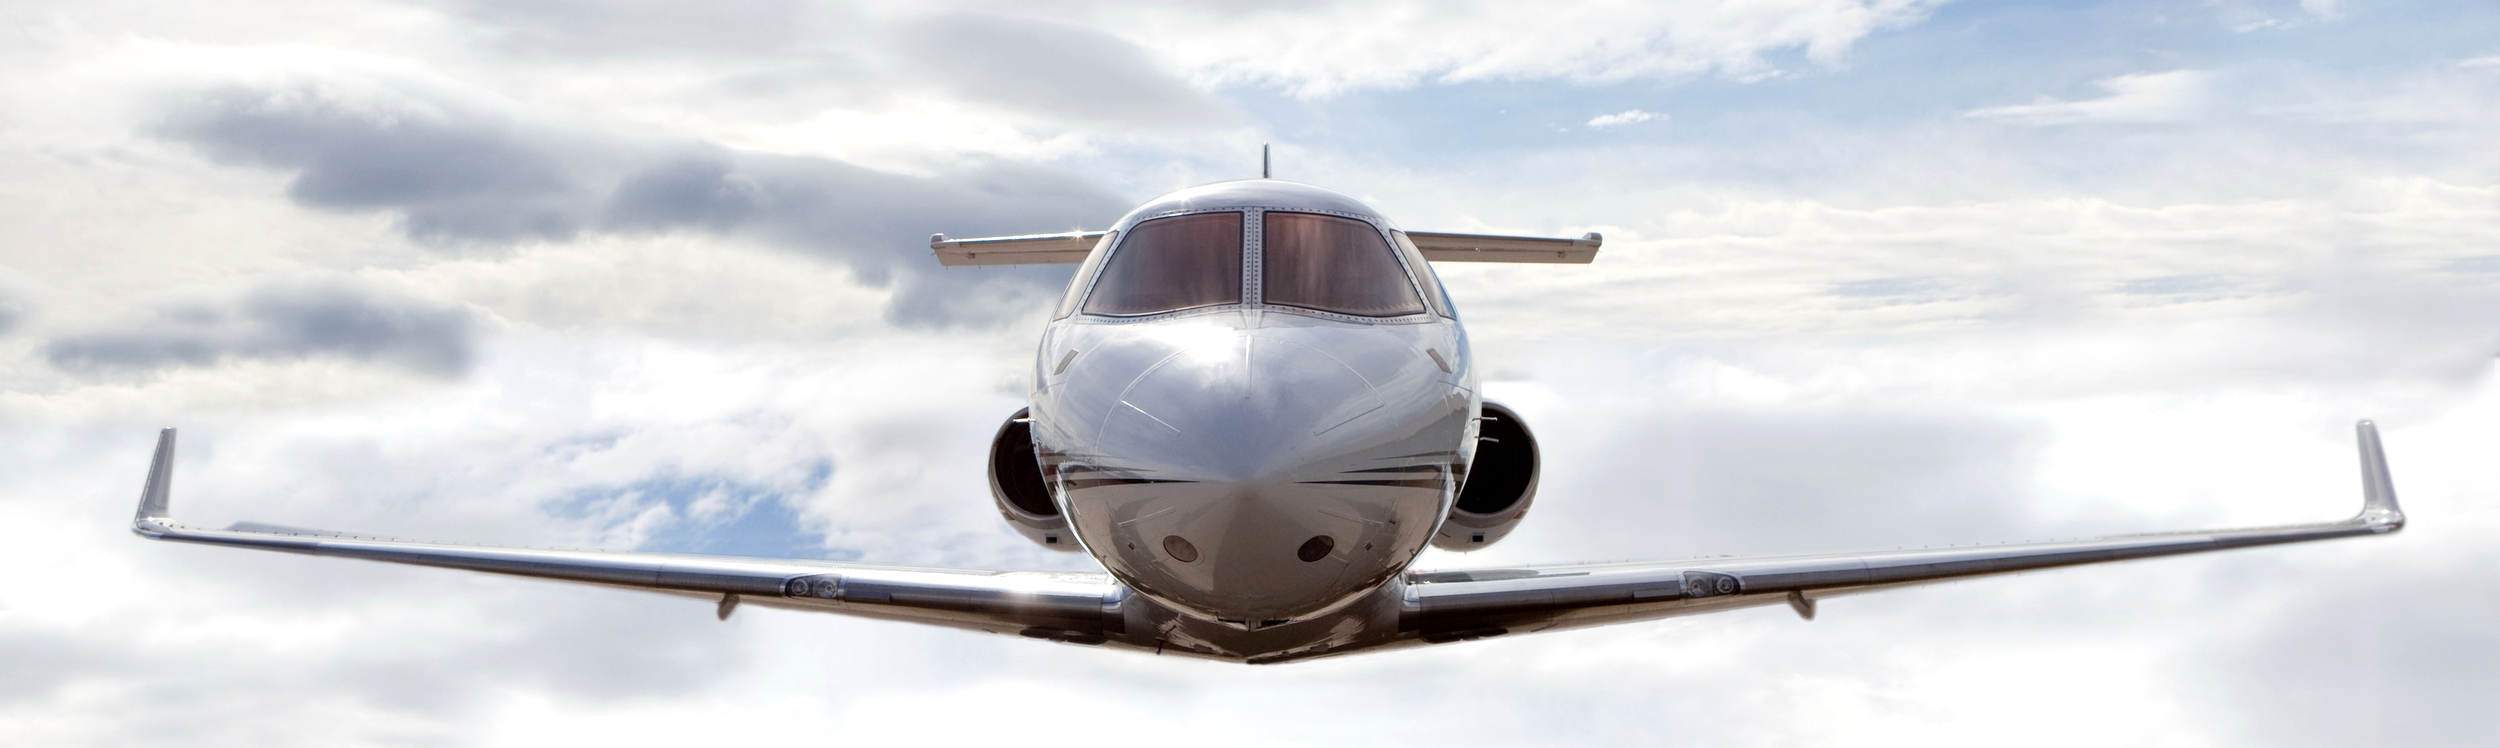 Chicago private jet offers empty legs and chicago jet one ways as well as Florida one ways